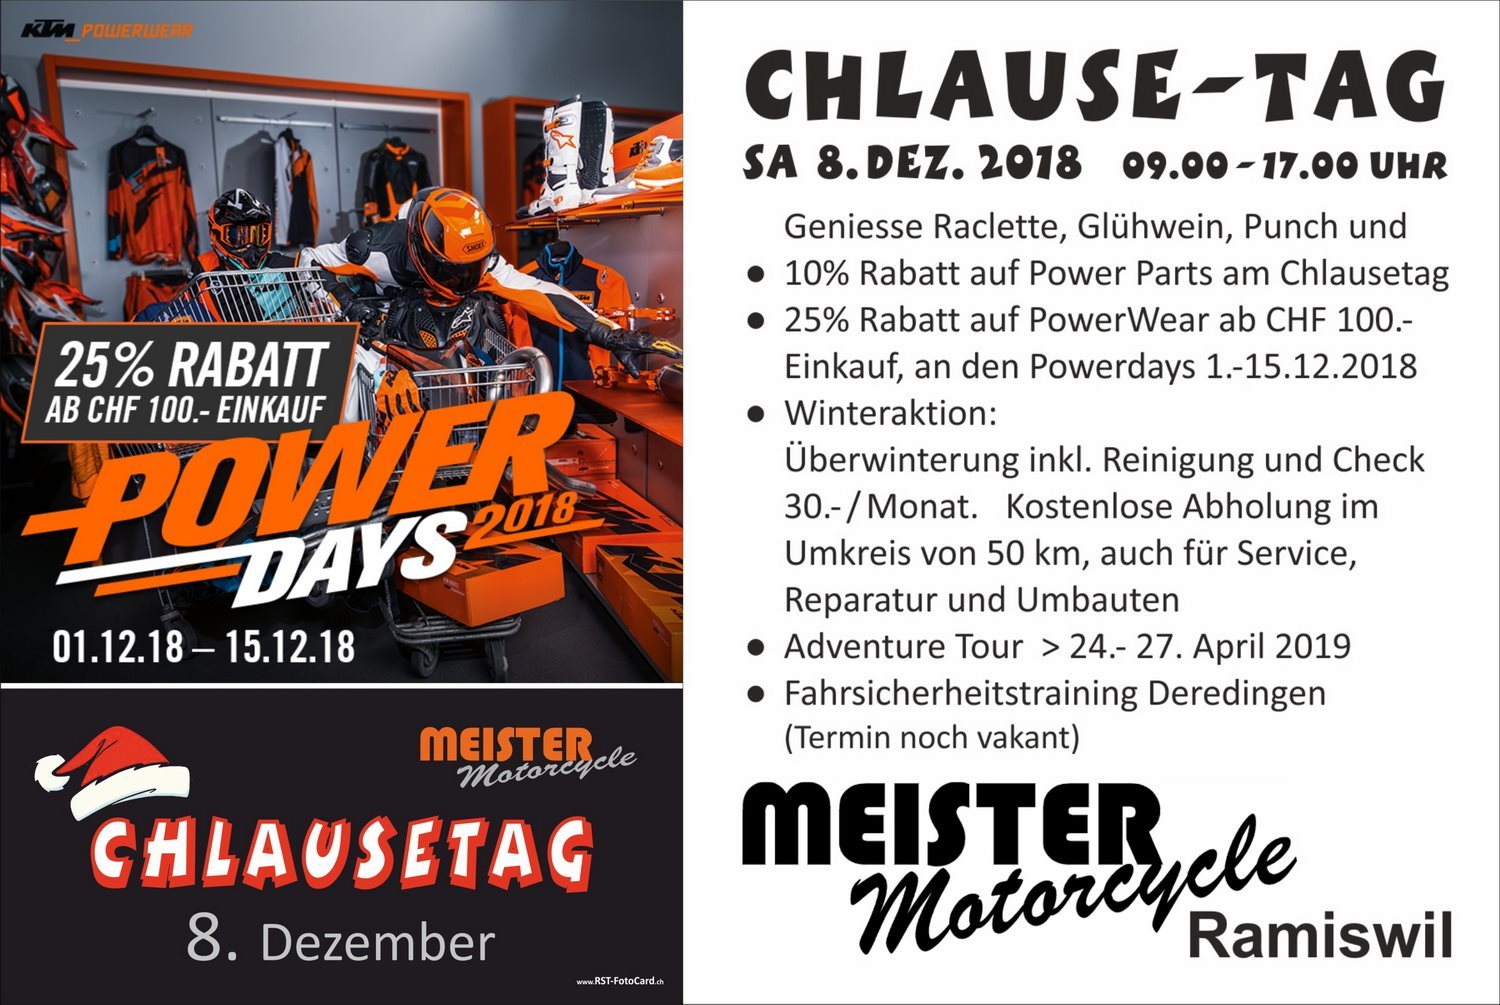 Meister Motorcycle AG-News: Powerdays und Chlausentag 2018